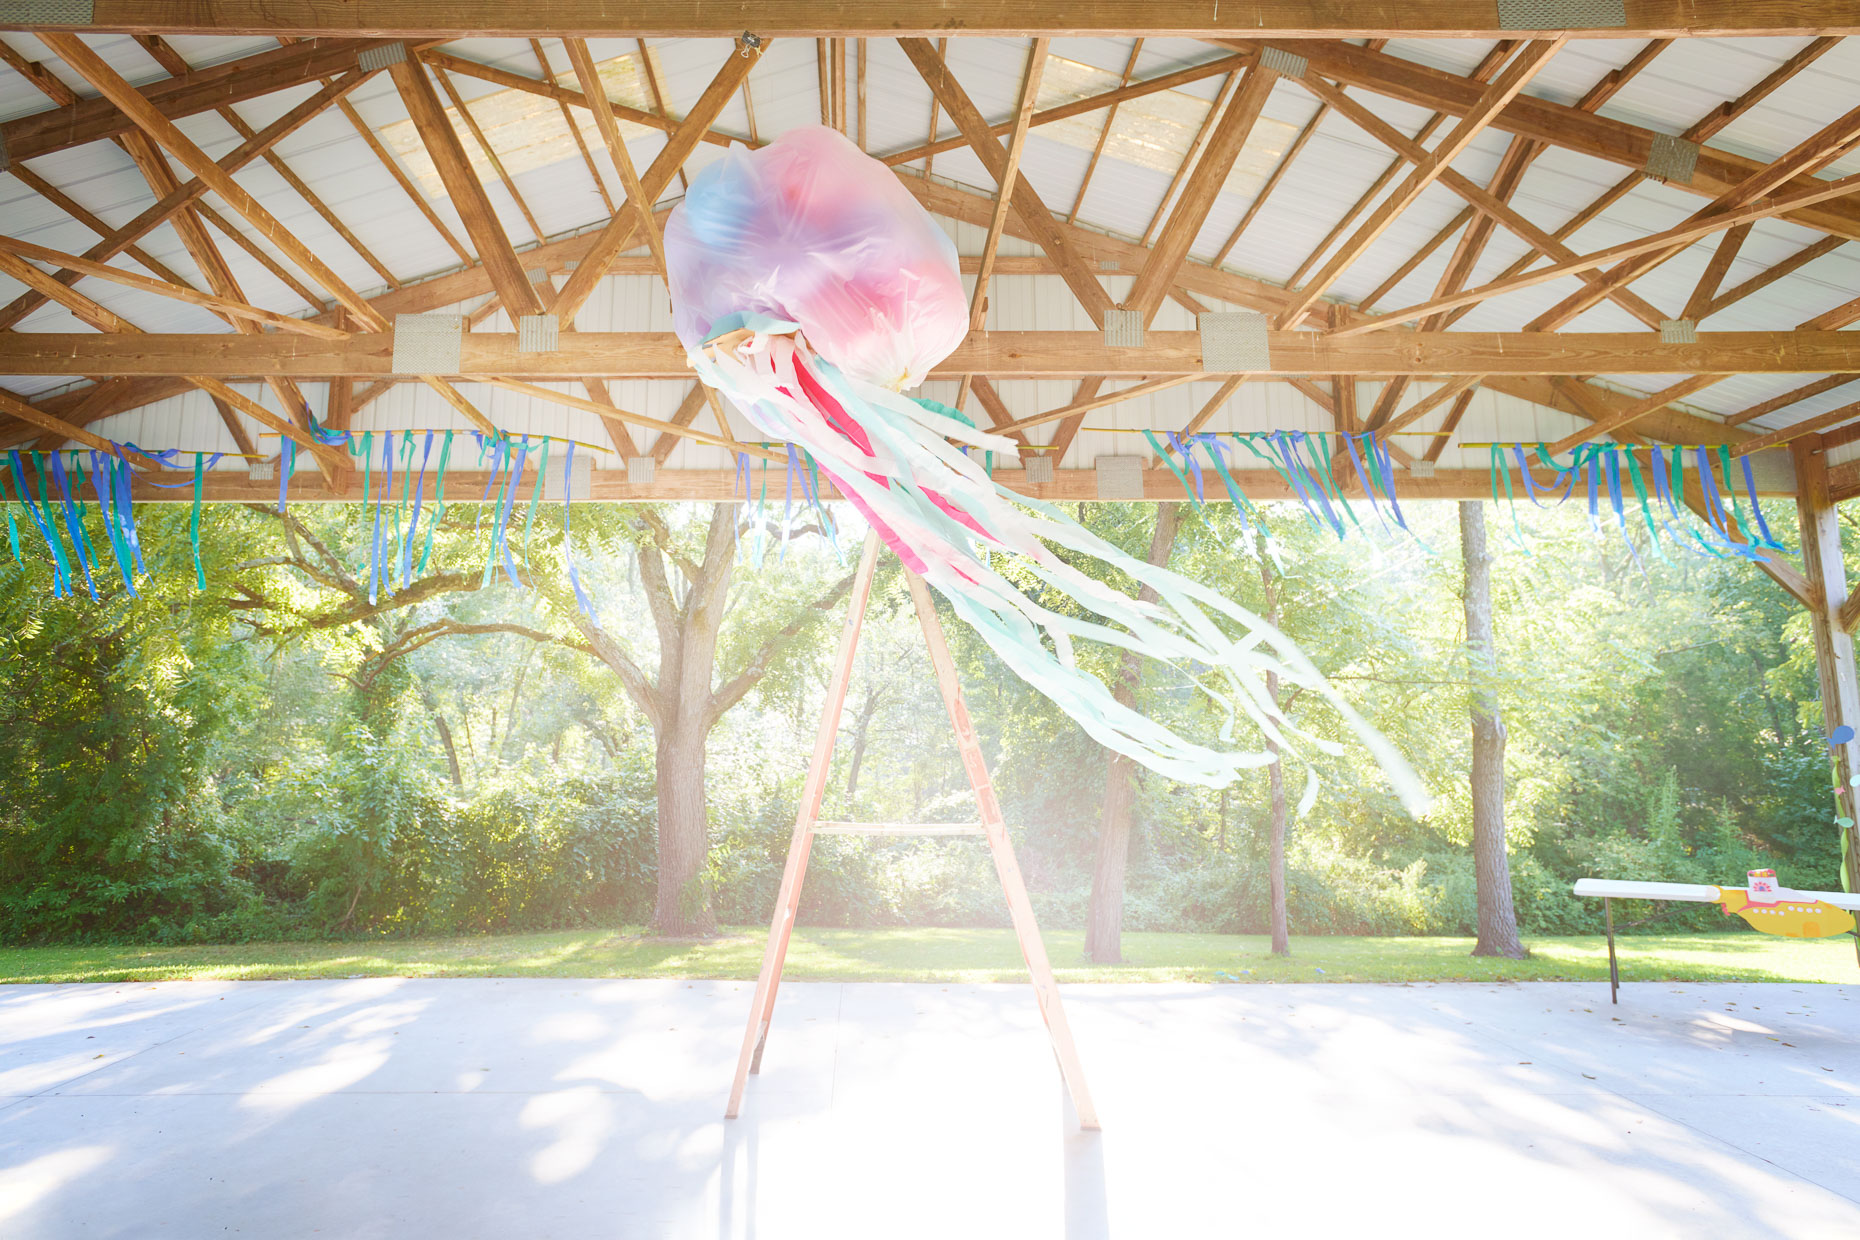 Balloon Streamer Jellyfish | Appel Farm Advertising